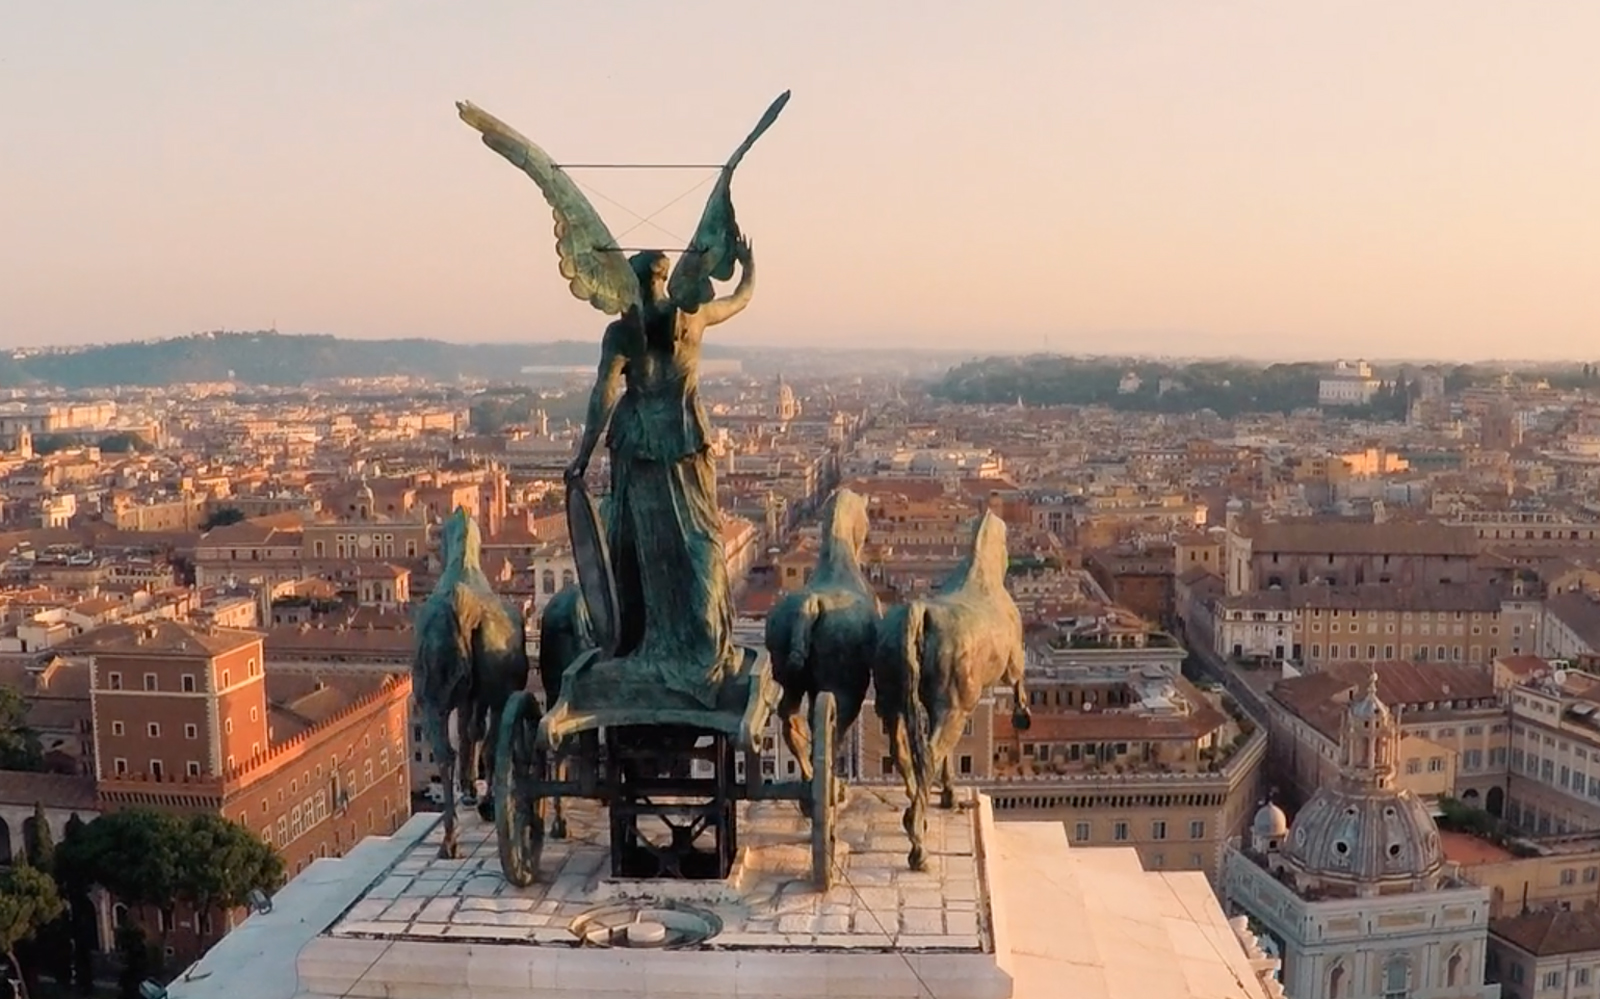 Video proof that Rome is one of the prettiest places on Earth: